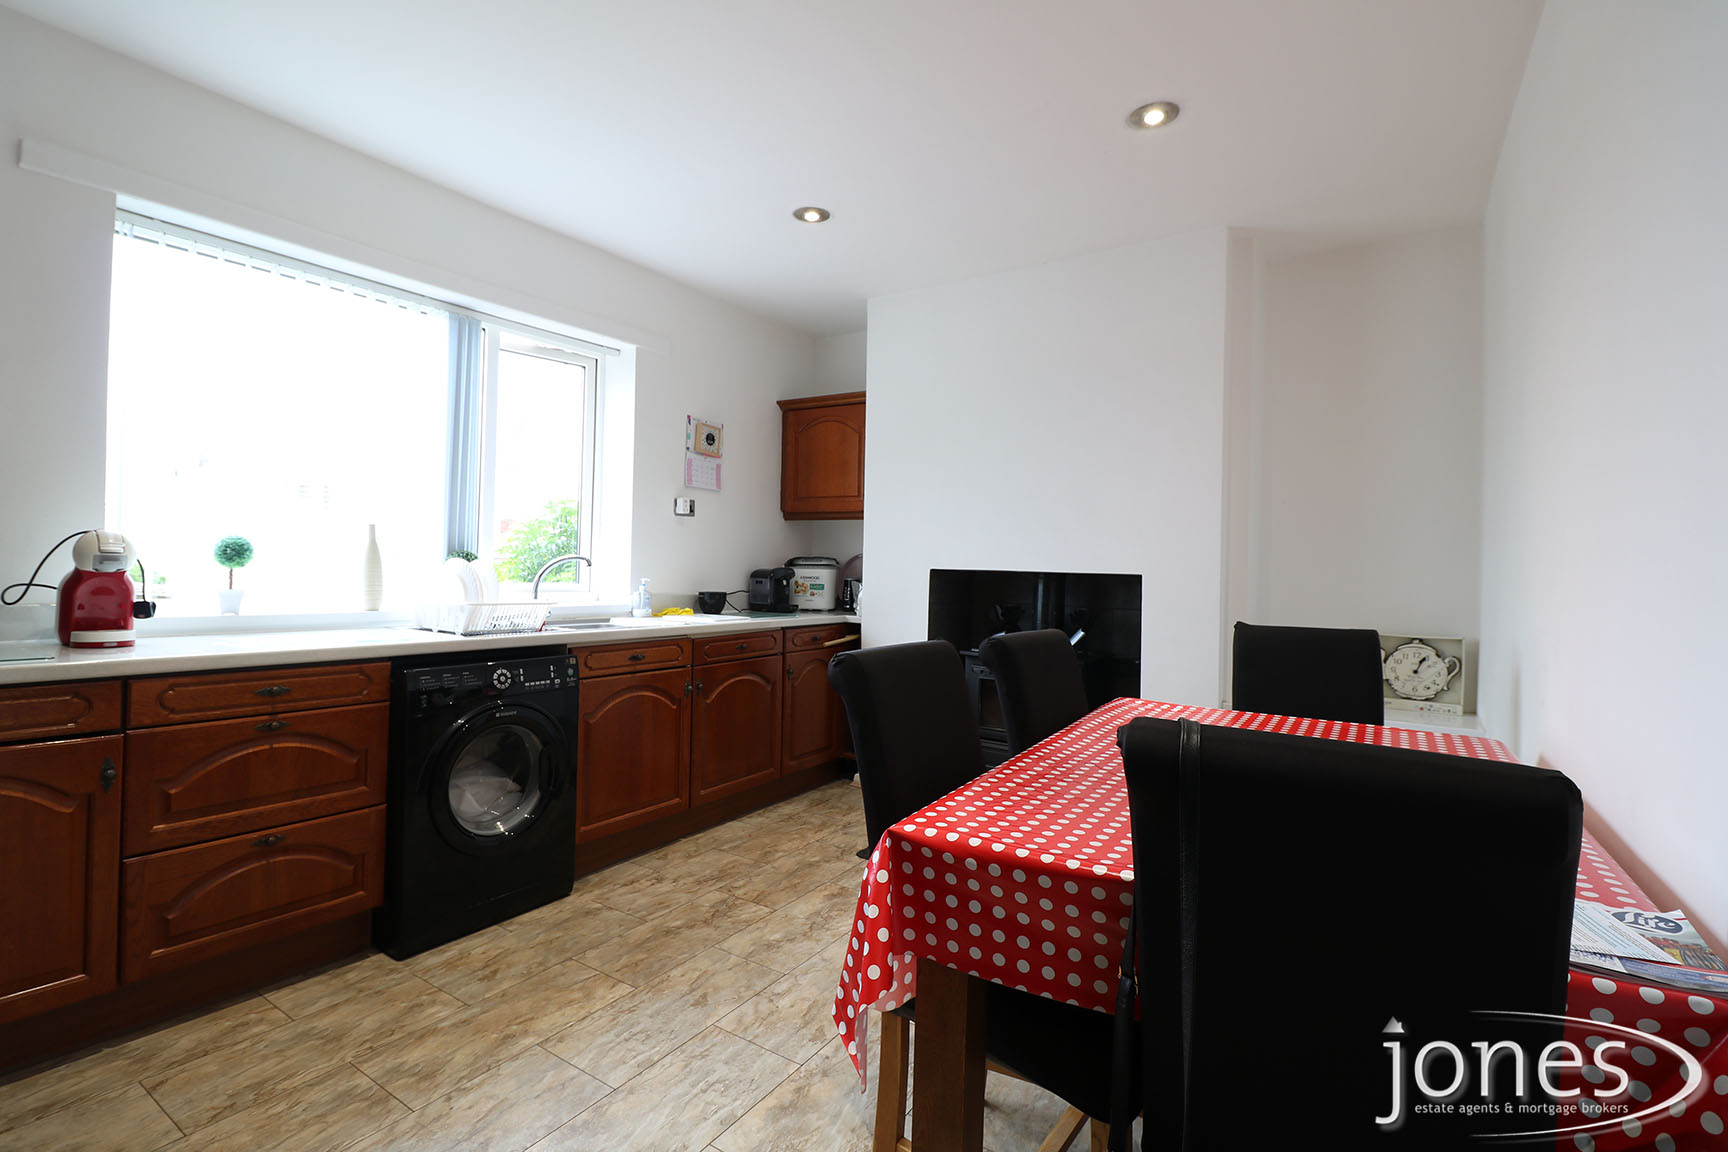 Home for Sale Let - Photo 04 Mill Crescent, Whitwell, Worksop, S80 4SF